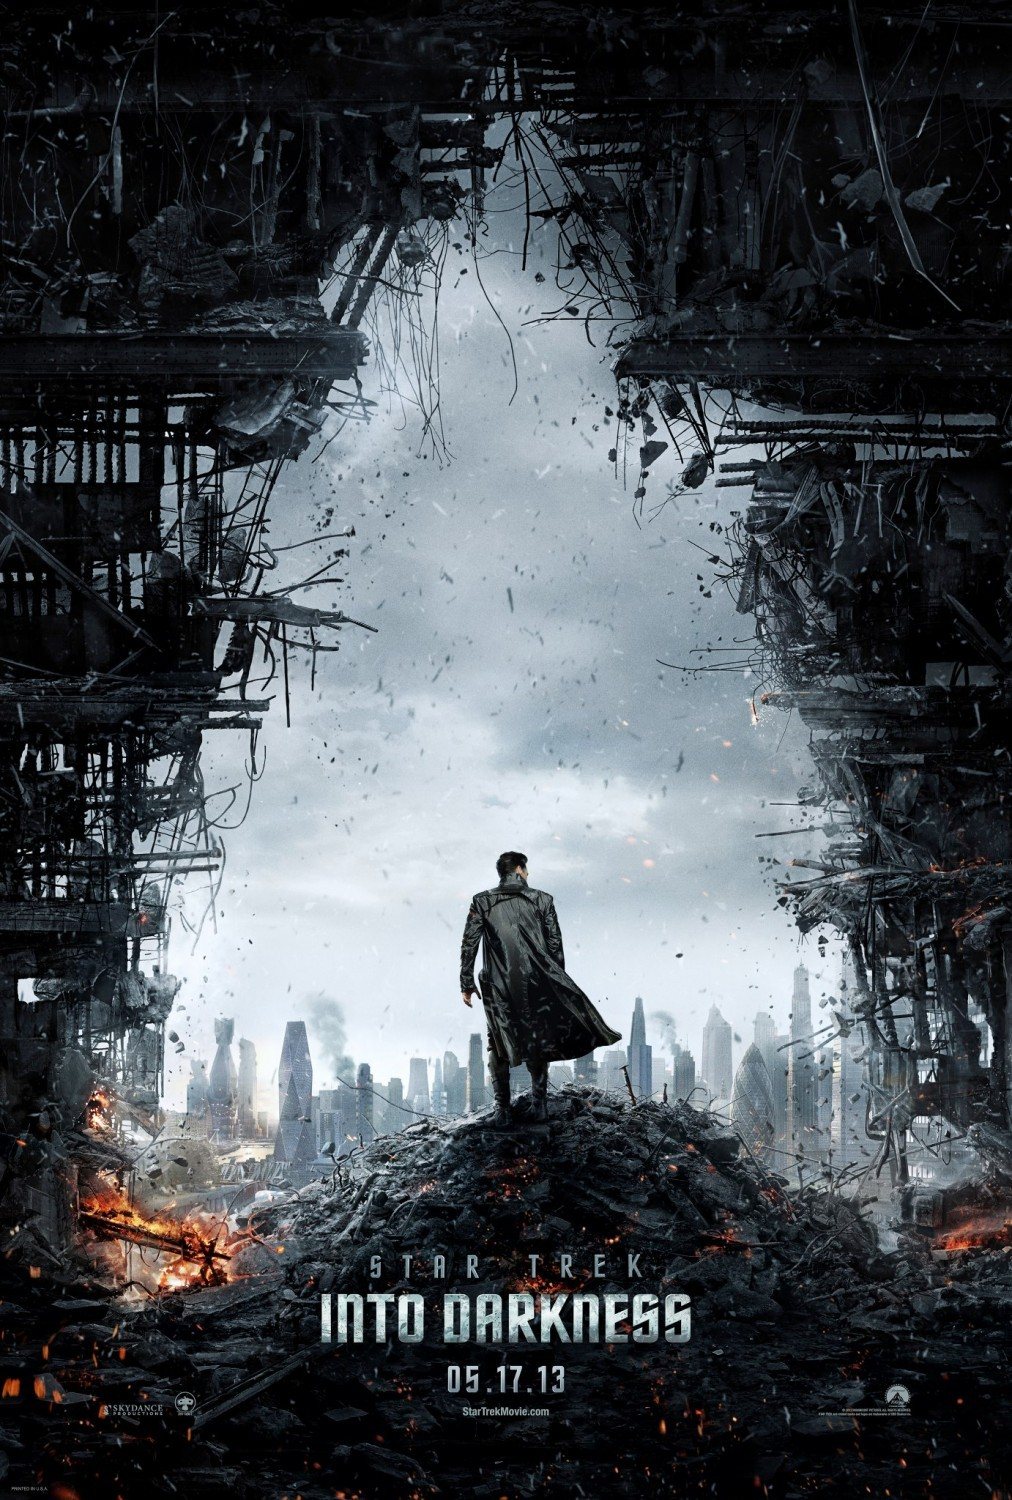 gamefreaksnz:  New 'Star Trek Into Darkness' trailer released  With only two months to go before 'Star Trek Into Darkness' beams into theatres, Paramount has released a third trailer for the film.  cant wait its going to be awesome